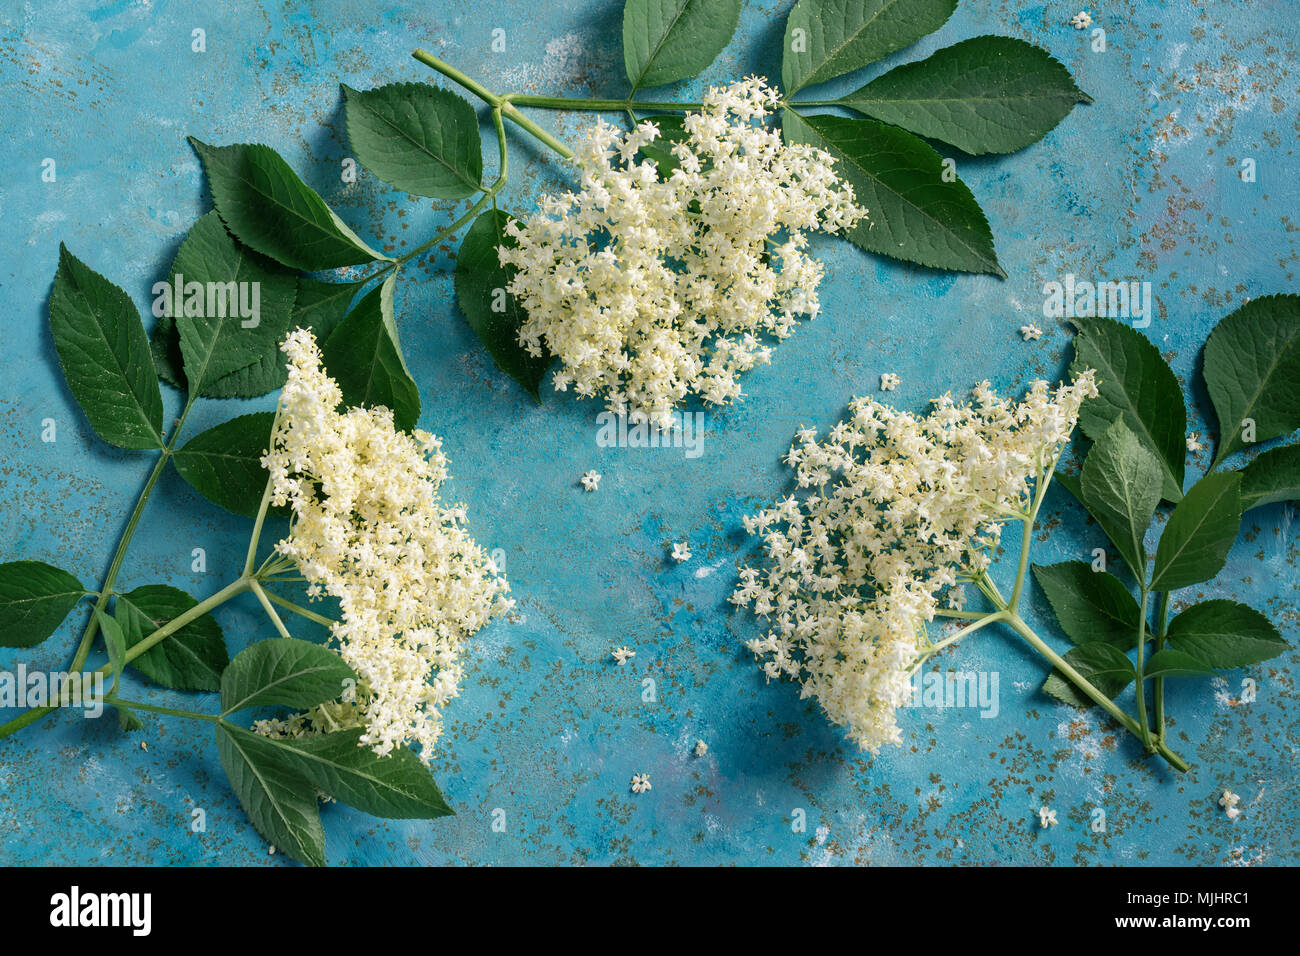 Elderflower blossom flower with green leaves. The flowers are edible and can be used to add flavour and aroma to both drinks and desserts. - Stock Image